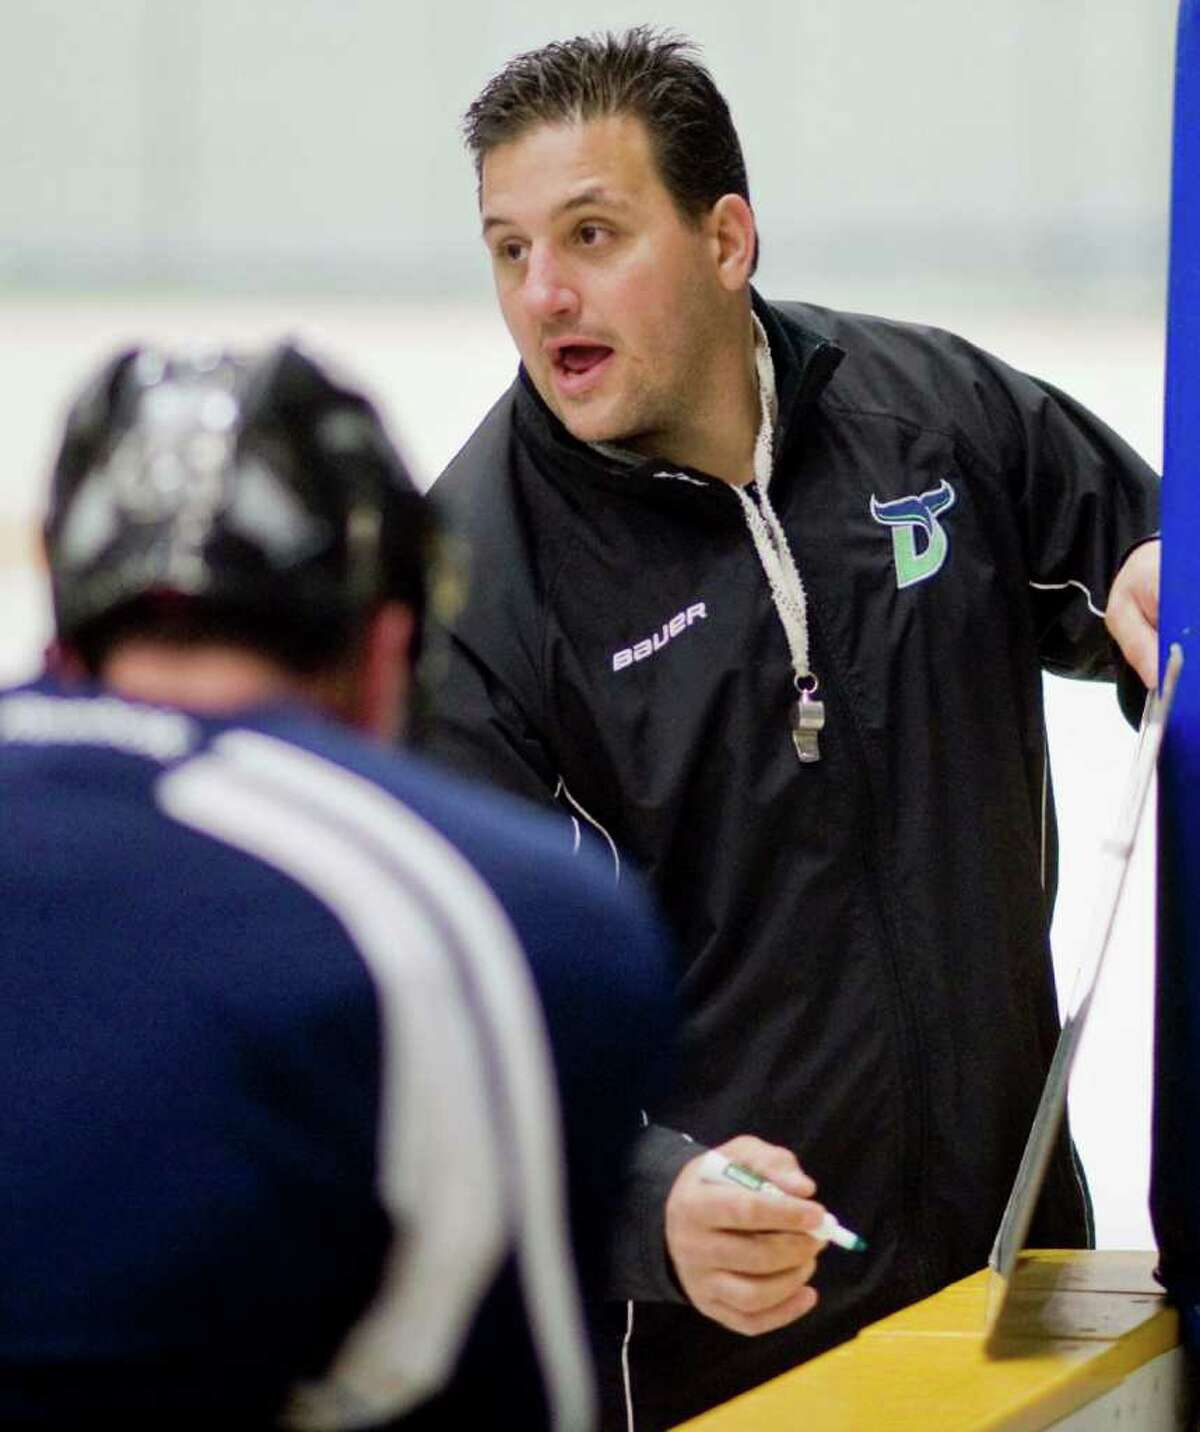 Whalers head coach Phil Esposito outlines a drill during a team practice in the Danbury Ice Arena. Wednesday, Oct. 19, 2011